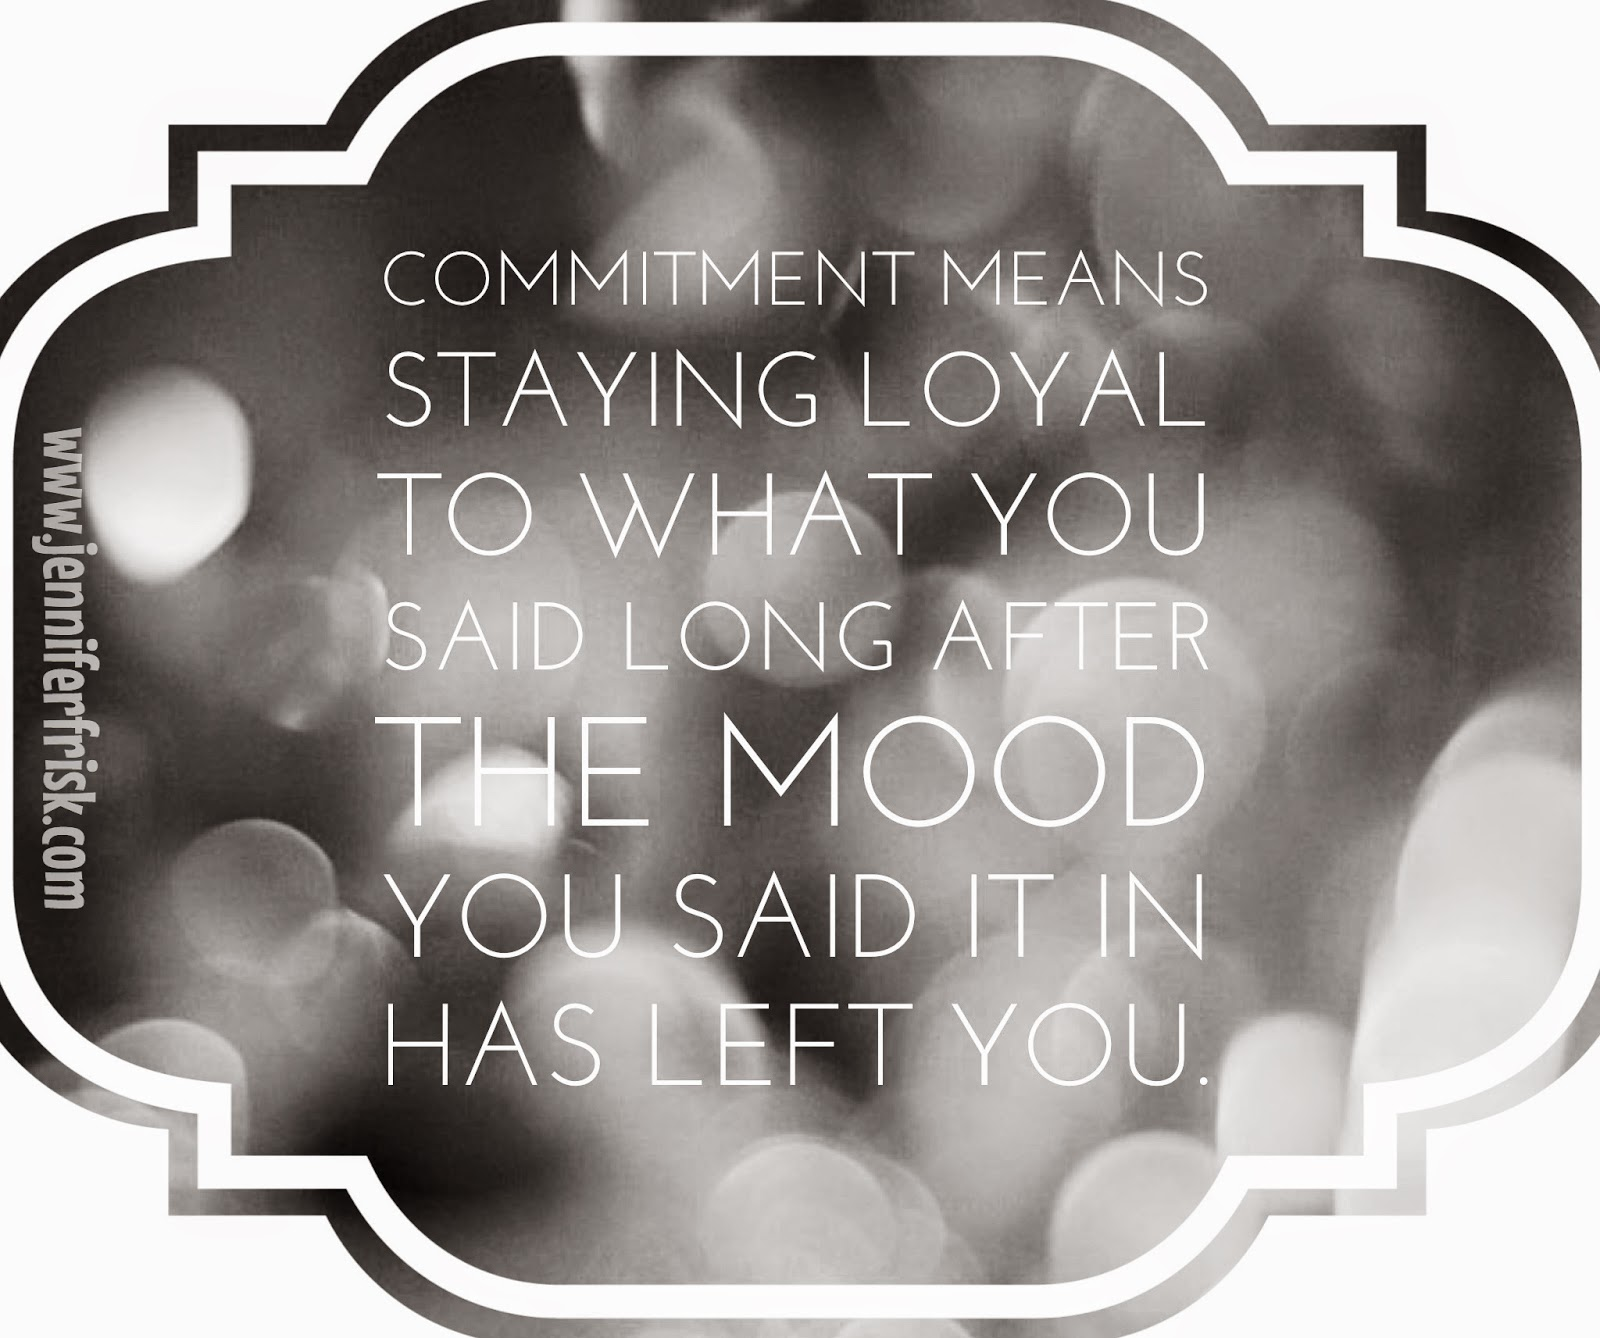 Commitment means staying loyal to what you said you were going to do, long after the mood you said it in has left you.